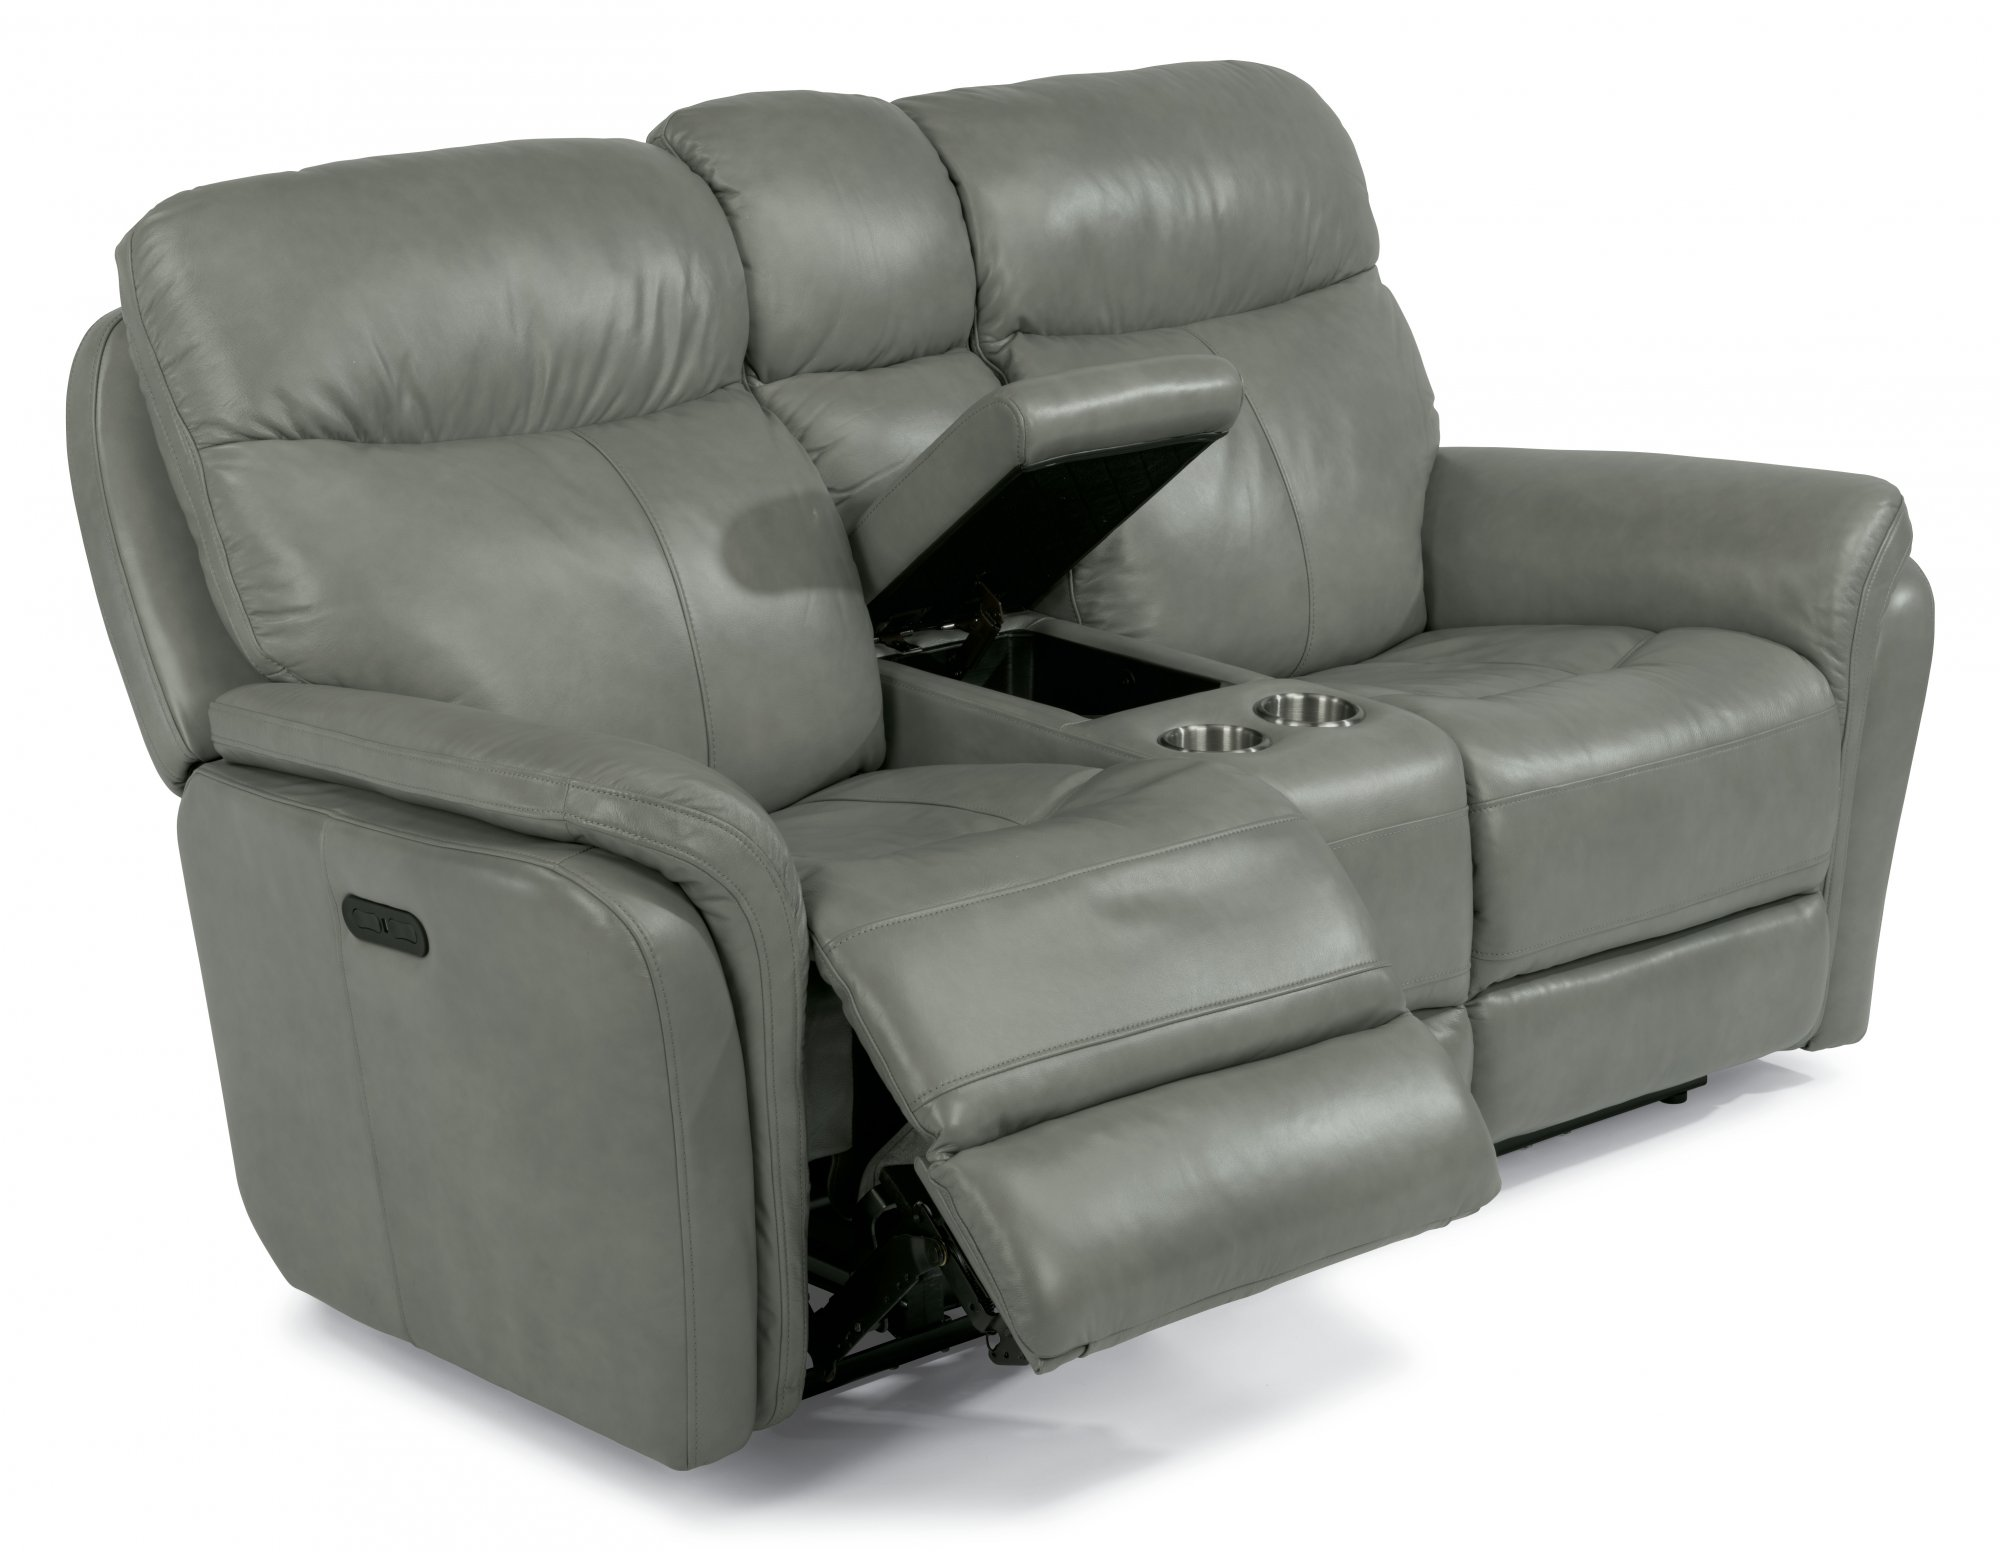 Strange Flexsteel 1653 64Ph Zoey Leather Power Reclining Caraccident5 Cool Chair Designs And Ideas Caraccident5Info